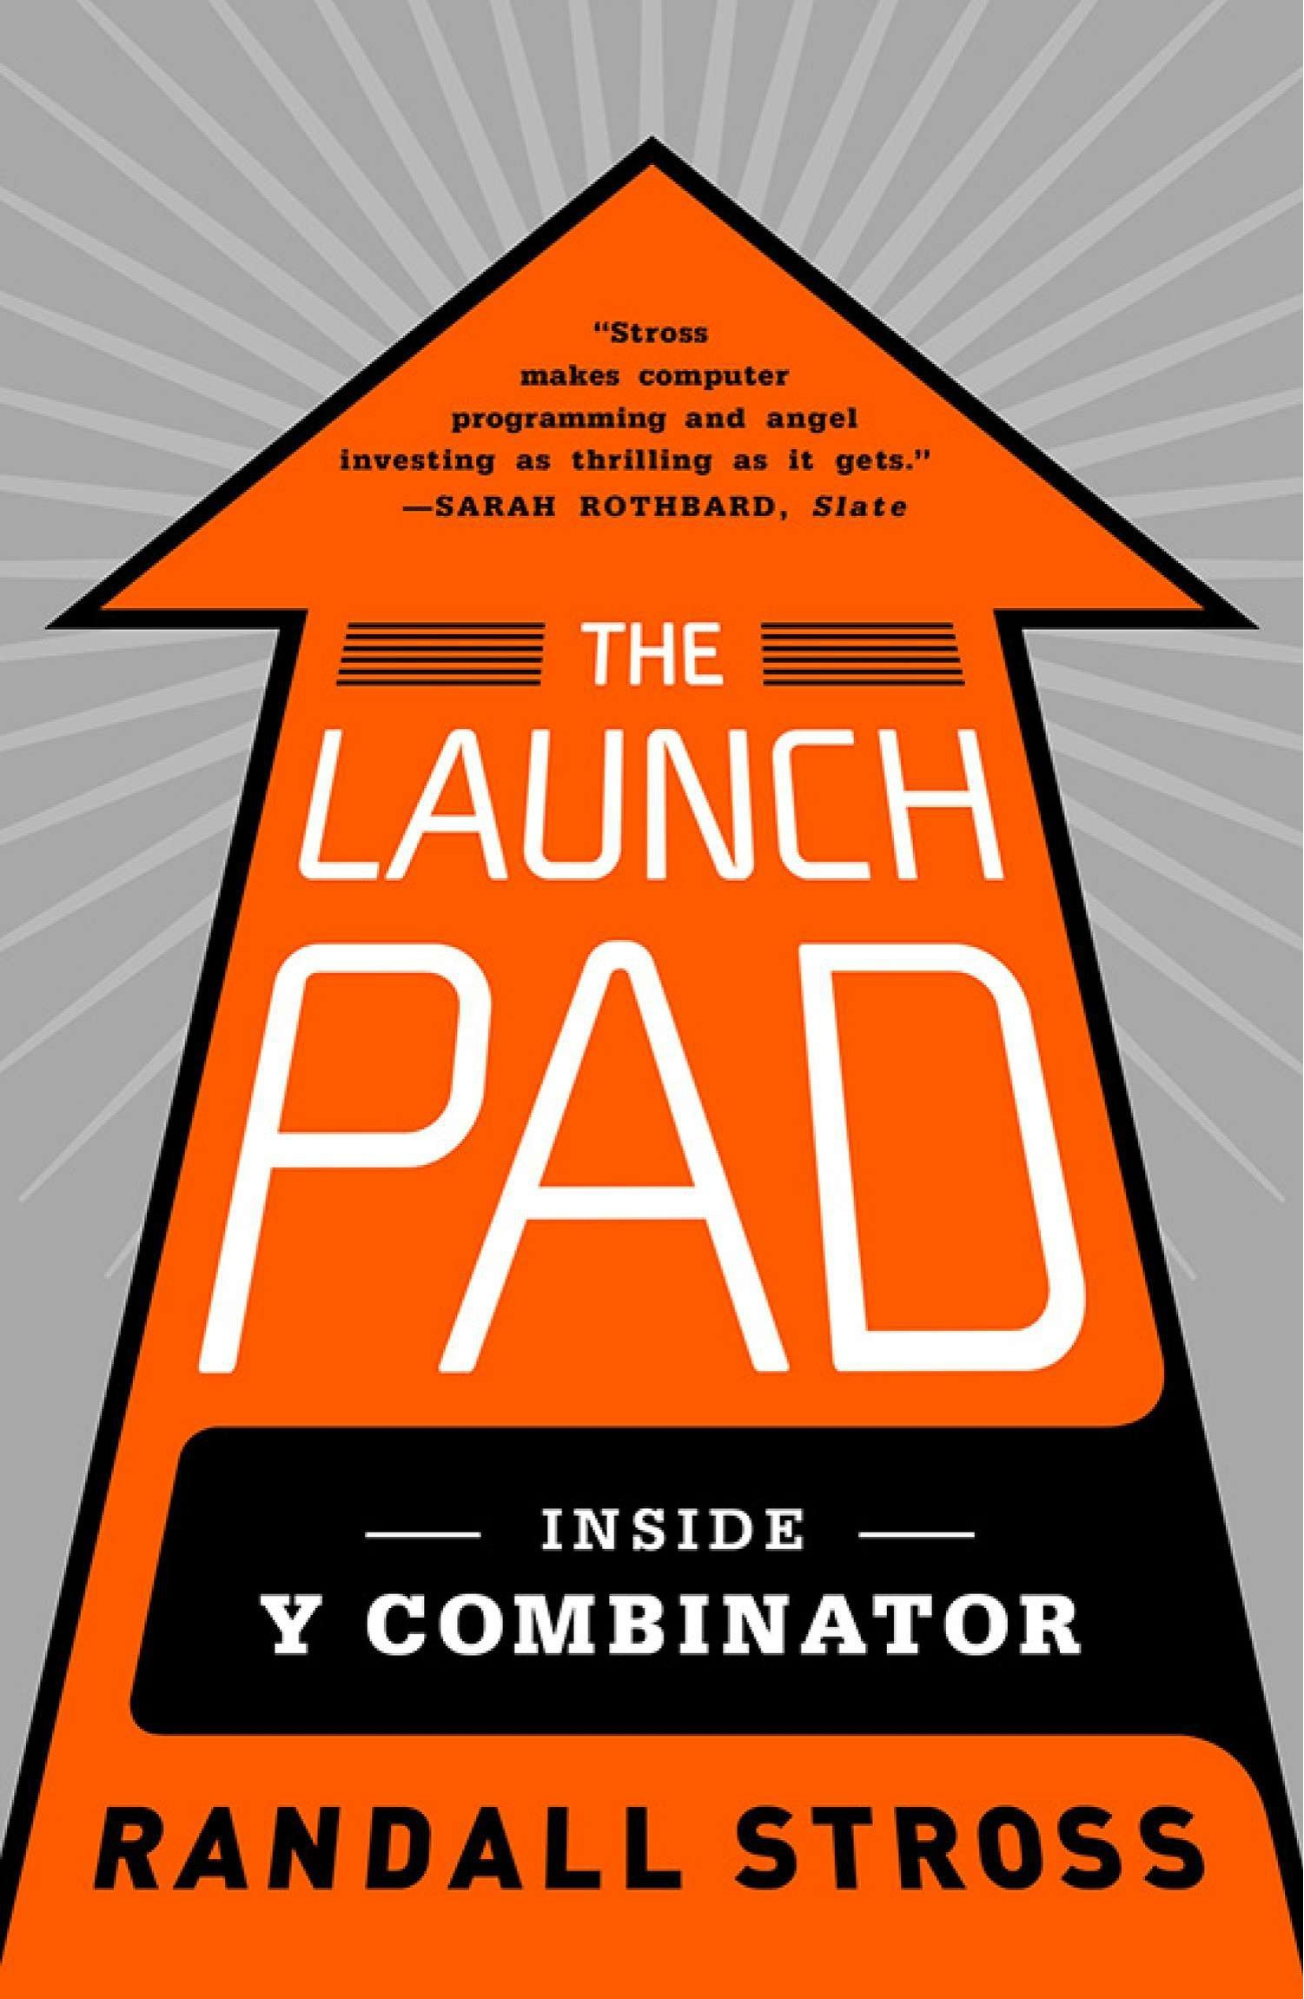 The Launchpad: Inside Y Combinator book cover